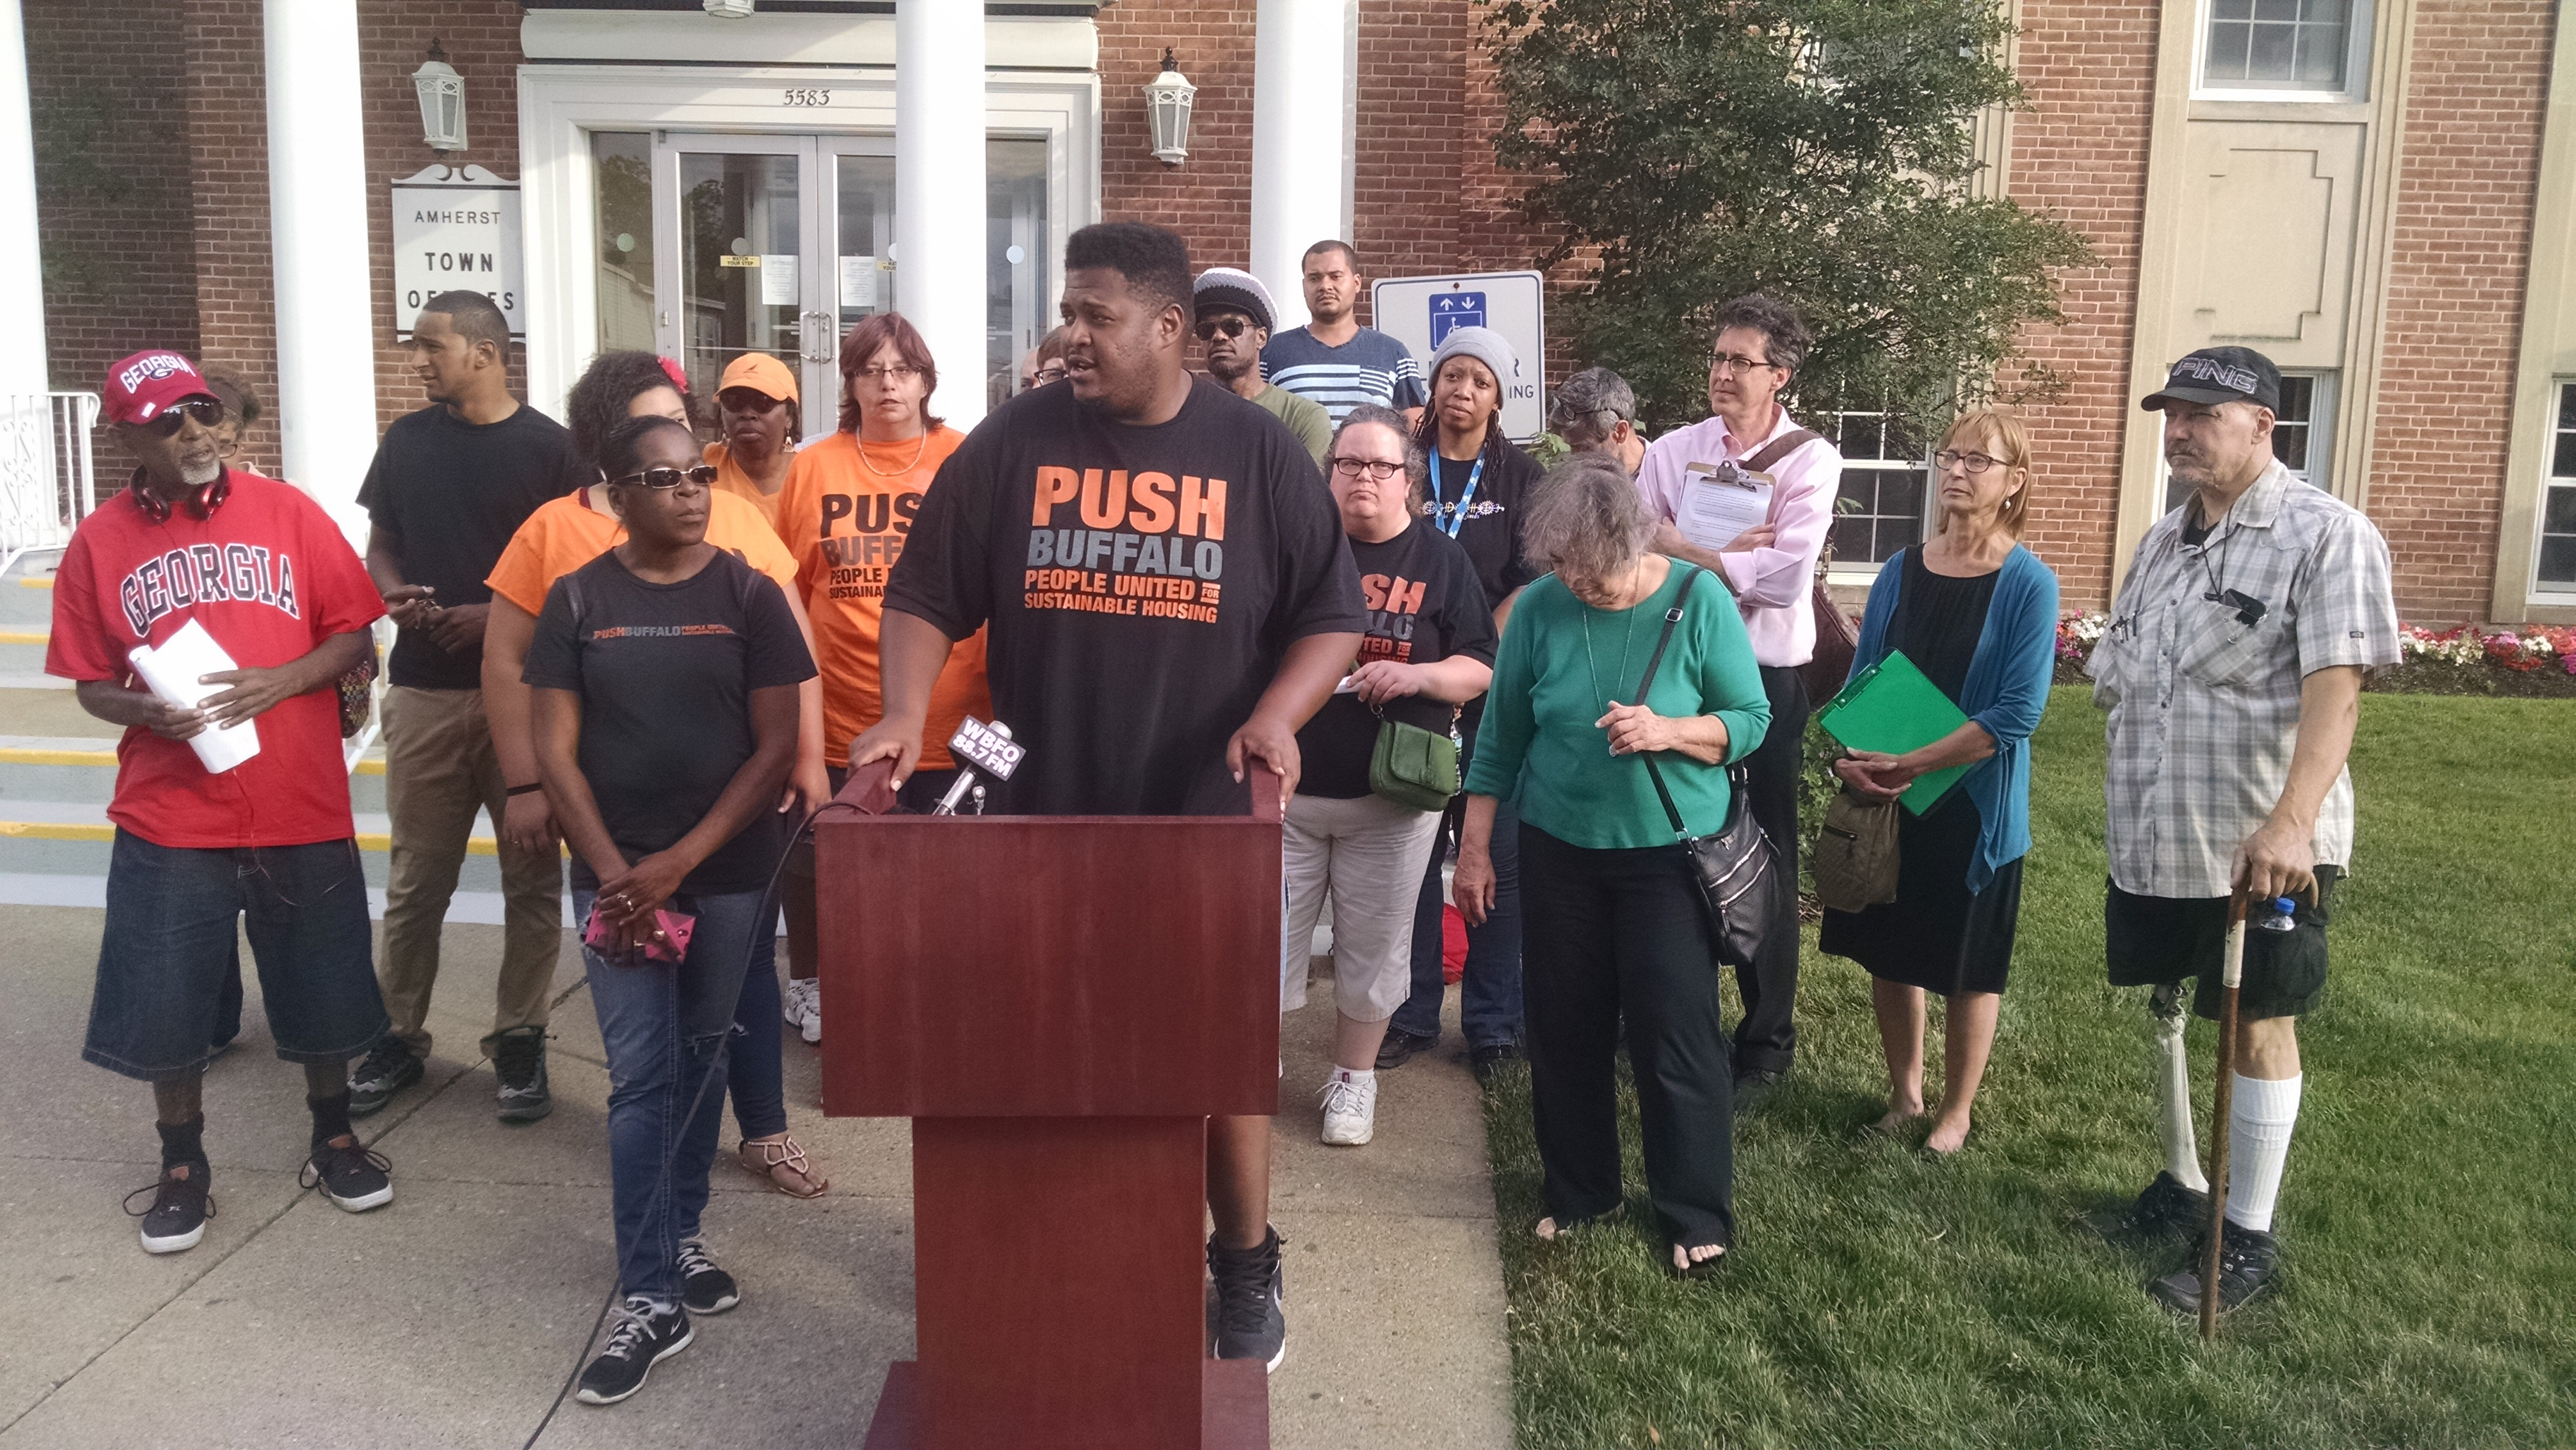 John Washington, a community organizer for PUSH Buffalo, leads a rally against a proposed National Fuel rate hike on Tuesday.